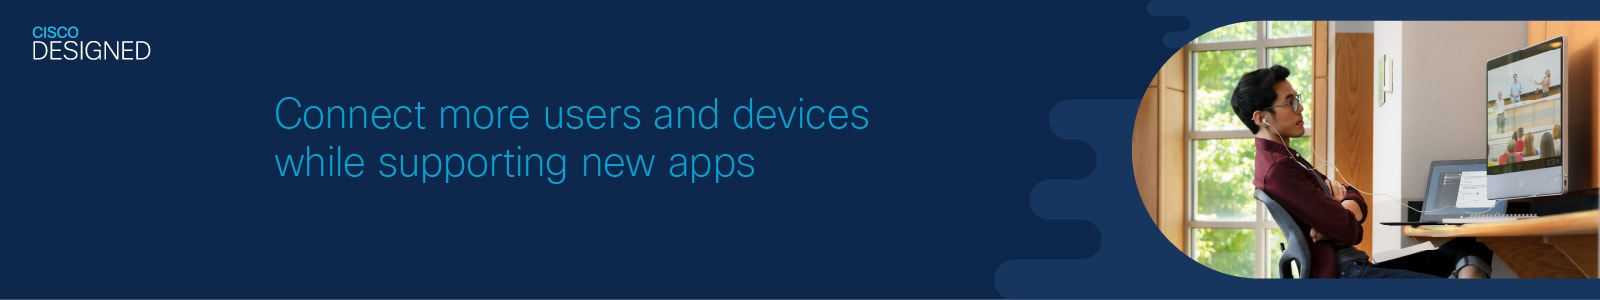 Connect more users and devices while supporting new apps